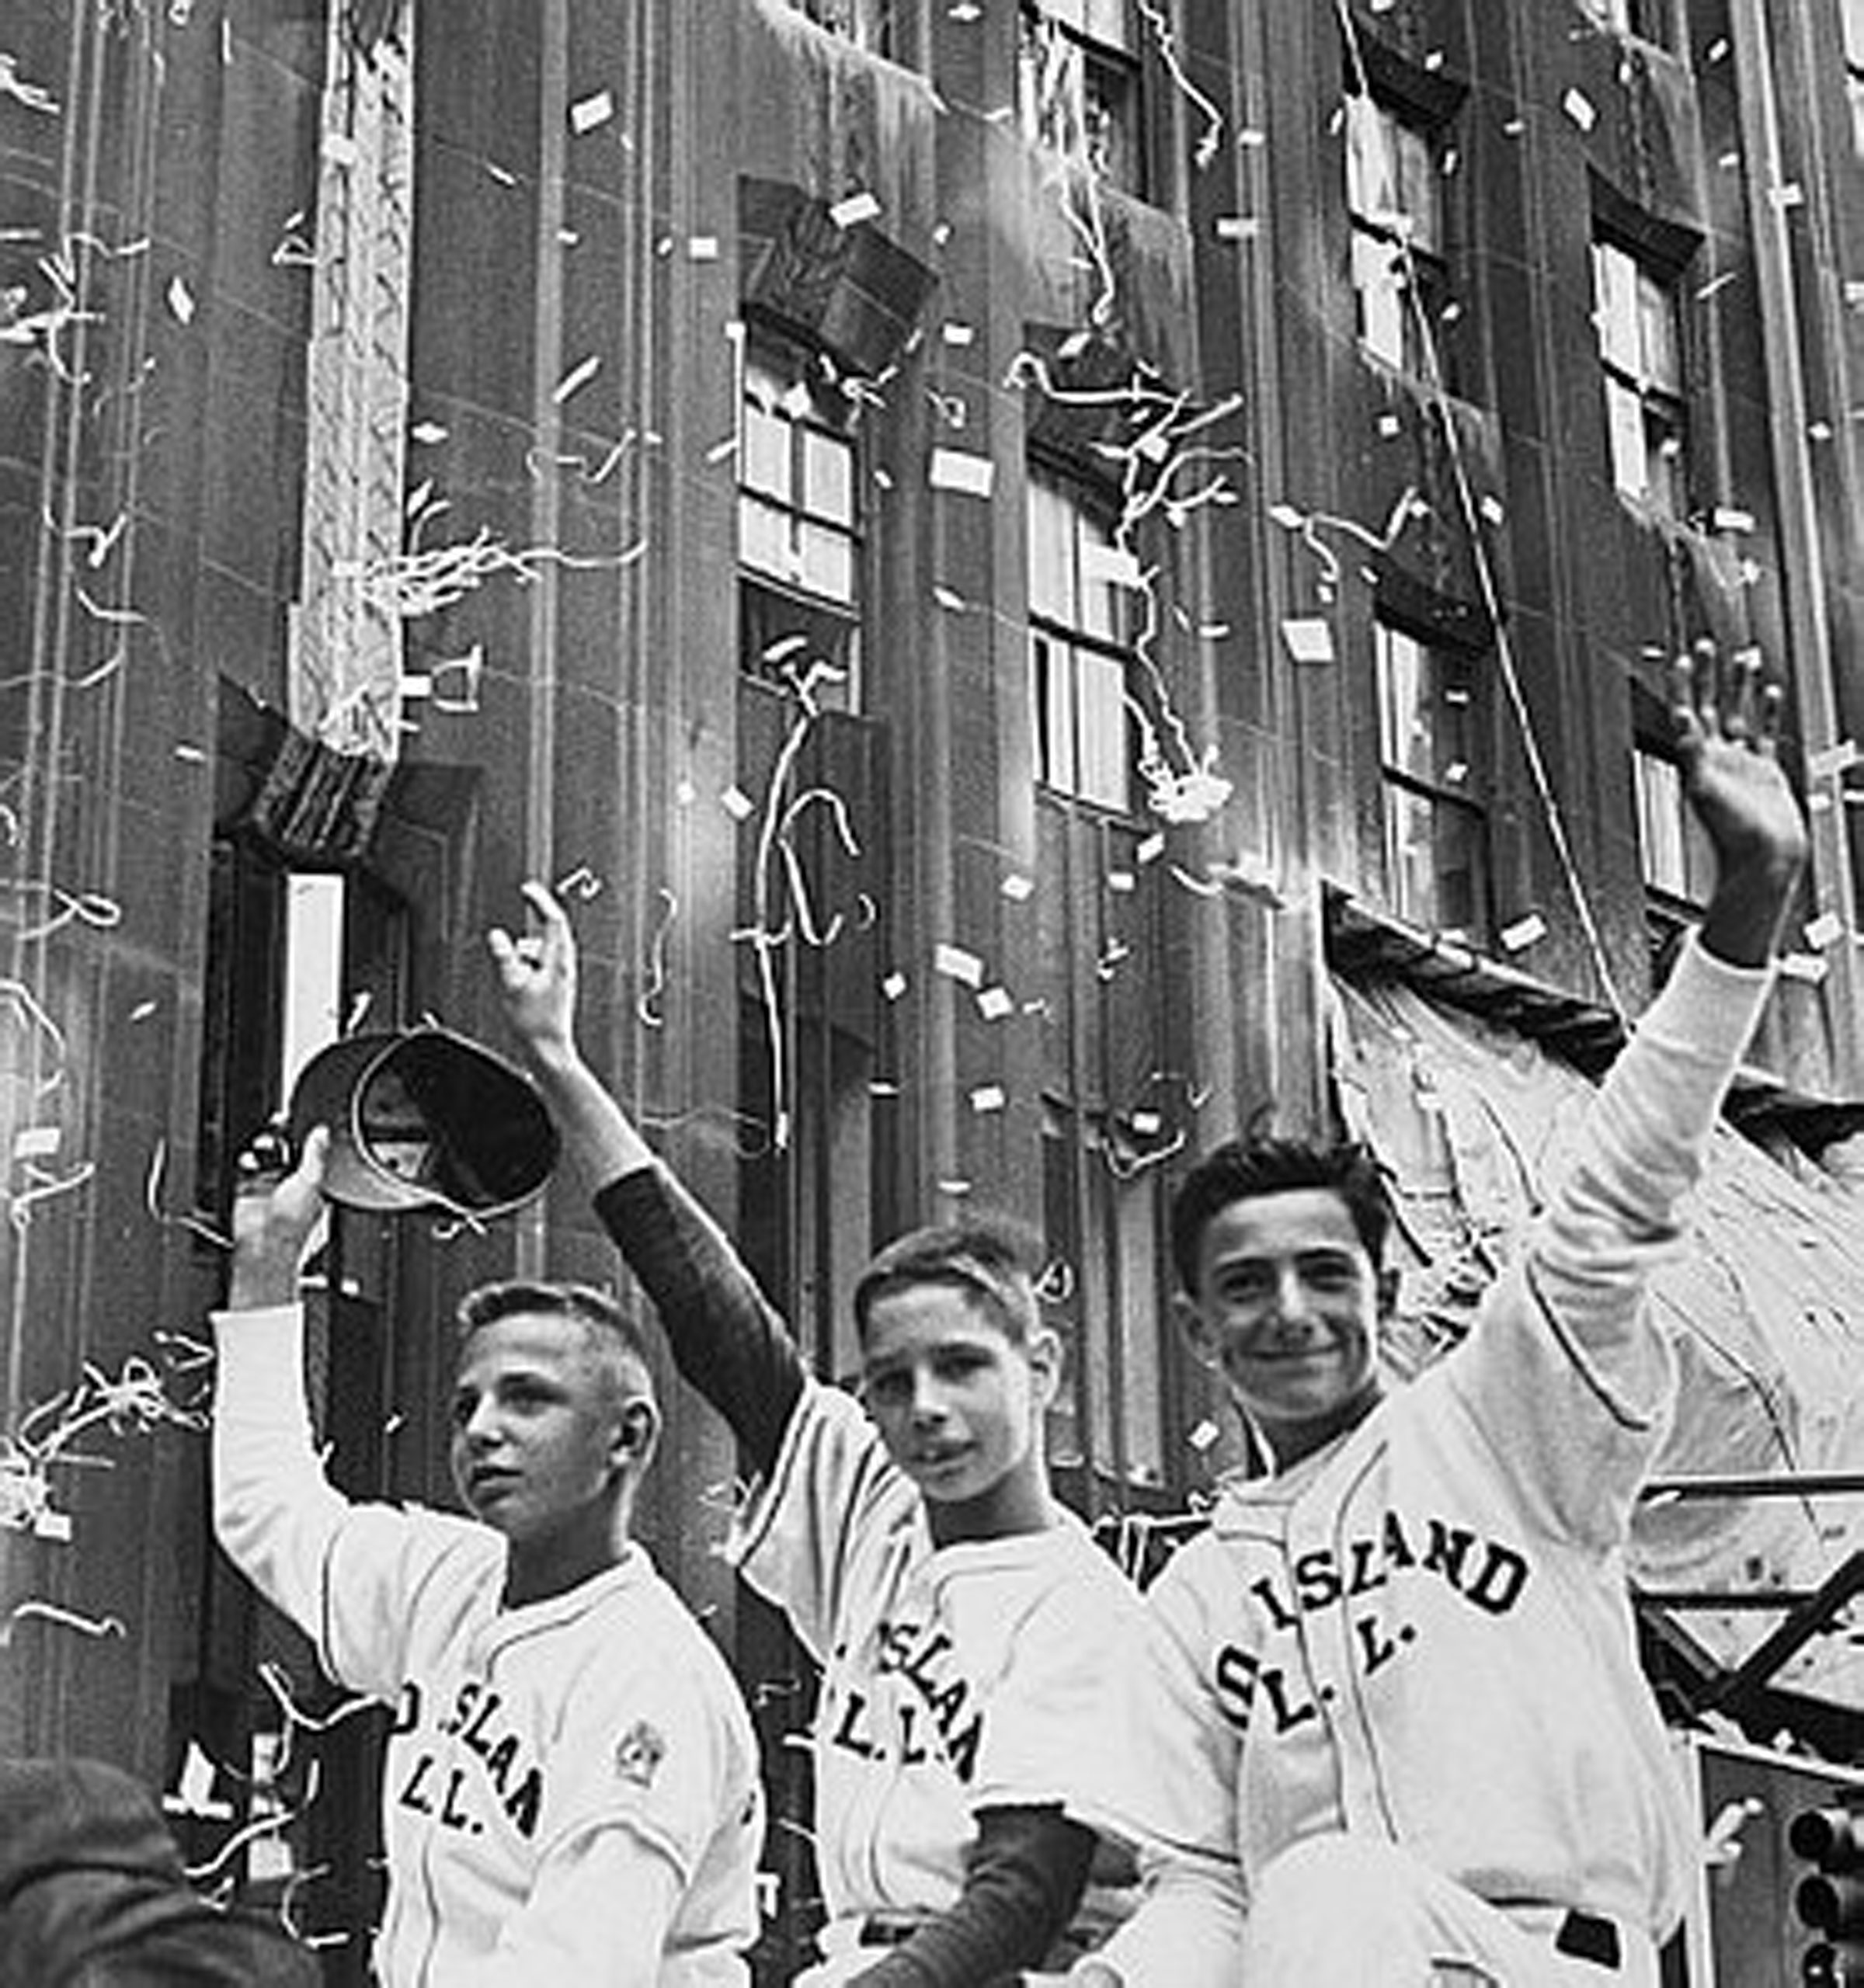 William Ebner, Gregory Klee, and Daniel Yaccarino, members of the Little League World Championship team, Staten Island's Mid-Island All-Stars, during a parade on Sept. 3, 1964.